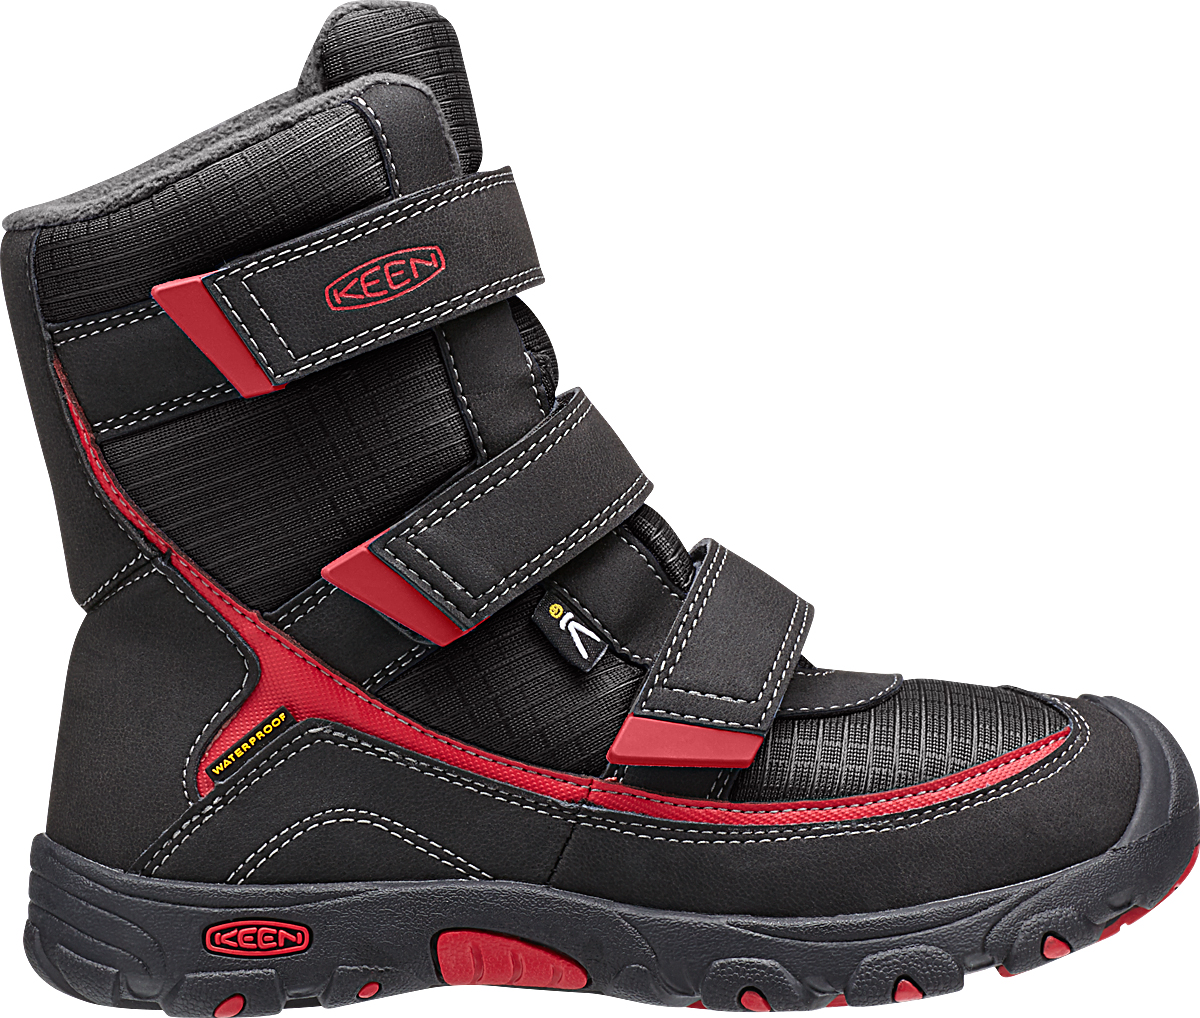 Keen Trezzo II WP Black/Ribbon Red-30